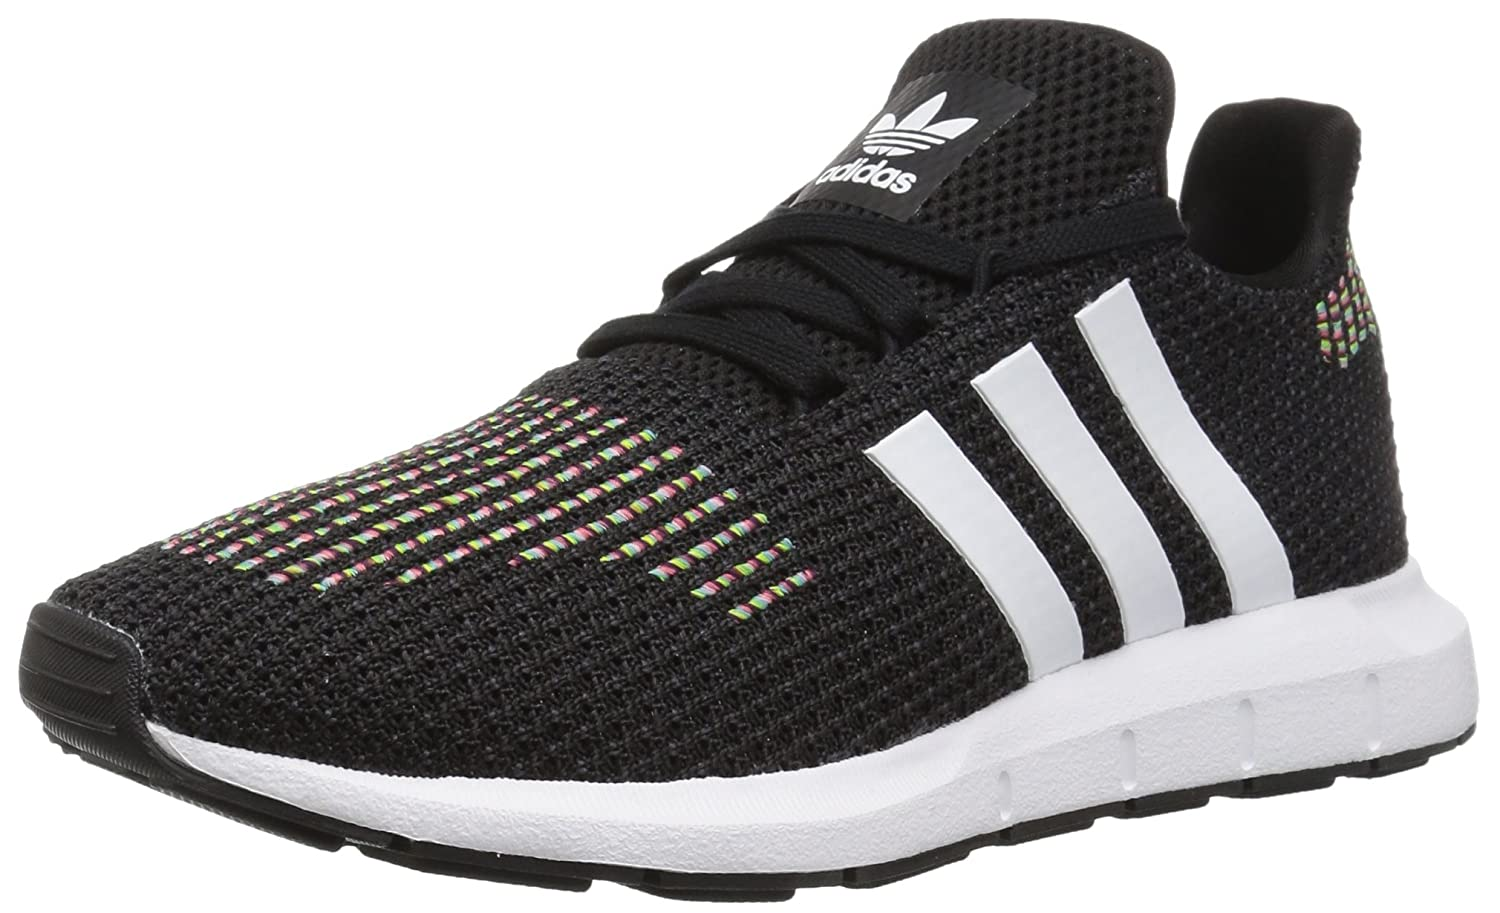 adidas Originals Women's Swift Run US|Core W B071S7N8BD 8.5 B(M) US|Core Run Black/White/Core Black 599aec